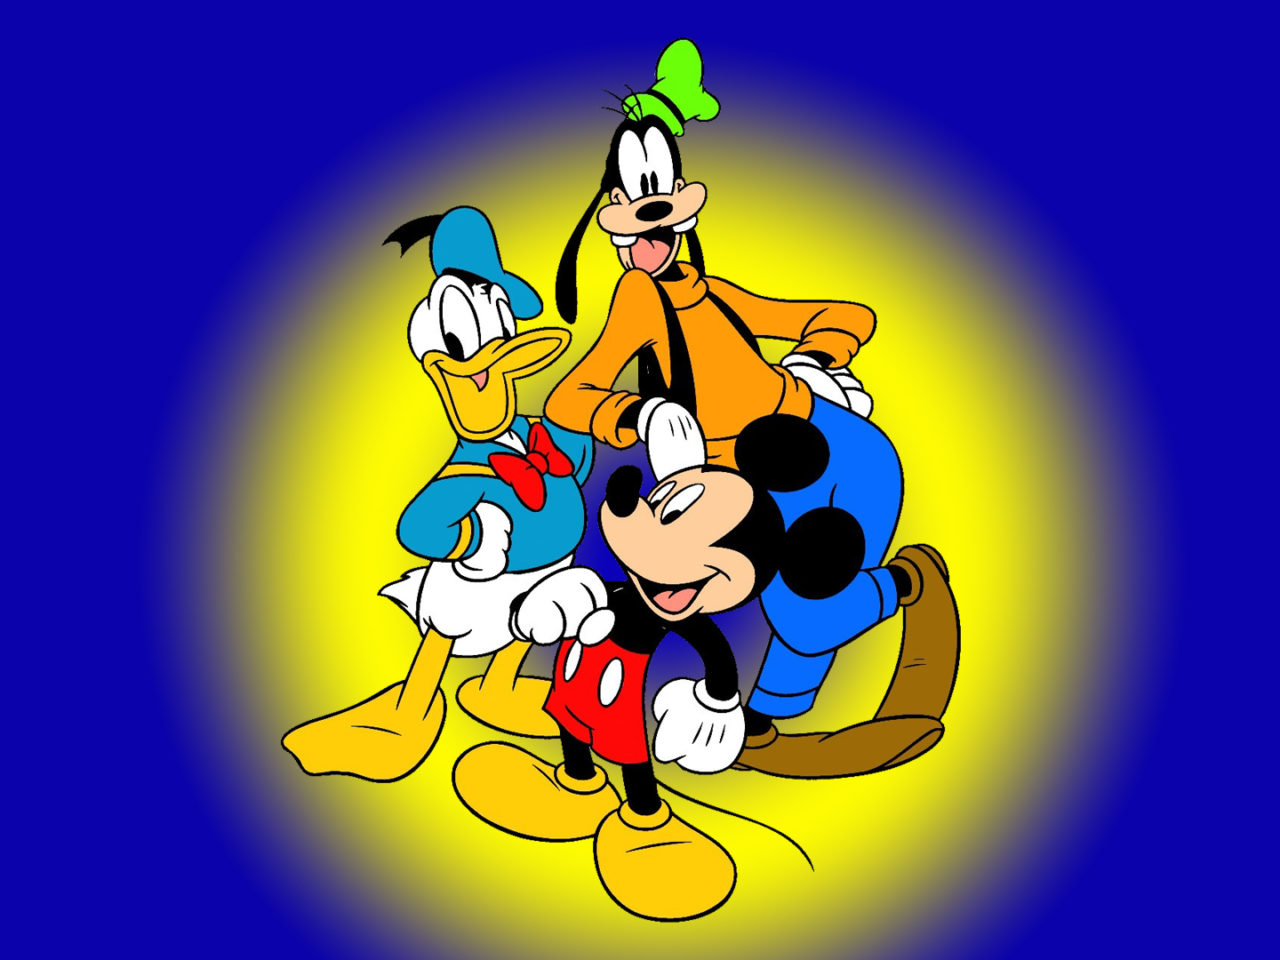 Mickey Wallpaper For Iphone Goofy Mickey Mouse And Donald Duck Famous Characters Walt